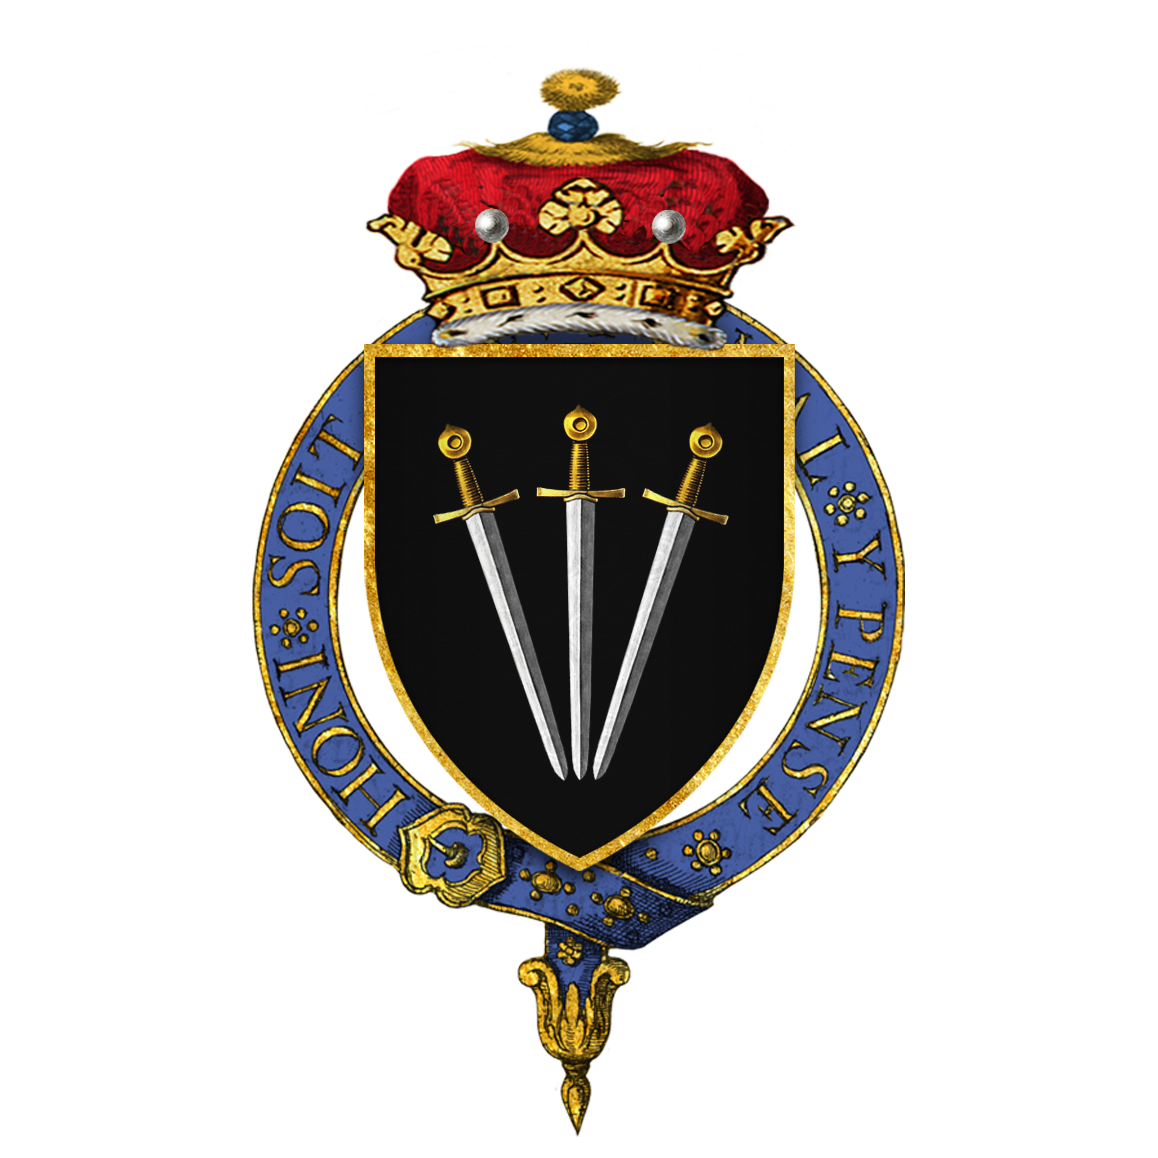 Coat_of_arms_of_Sir_William_Paulet,_1st_Marquess_of_Winchester,_KG.png (1158×1158)